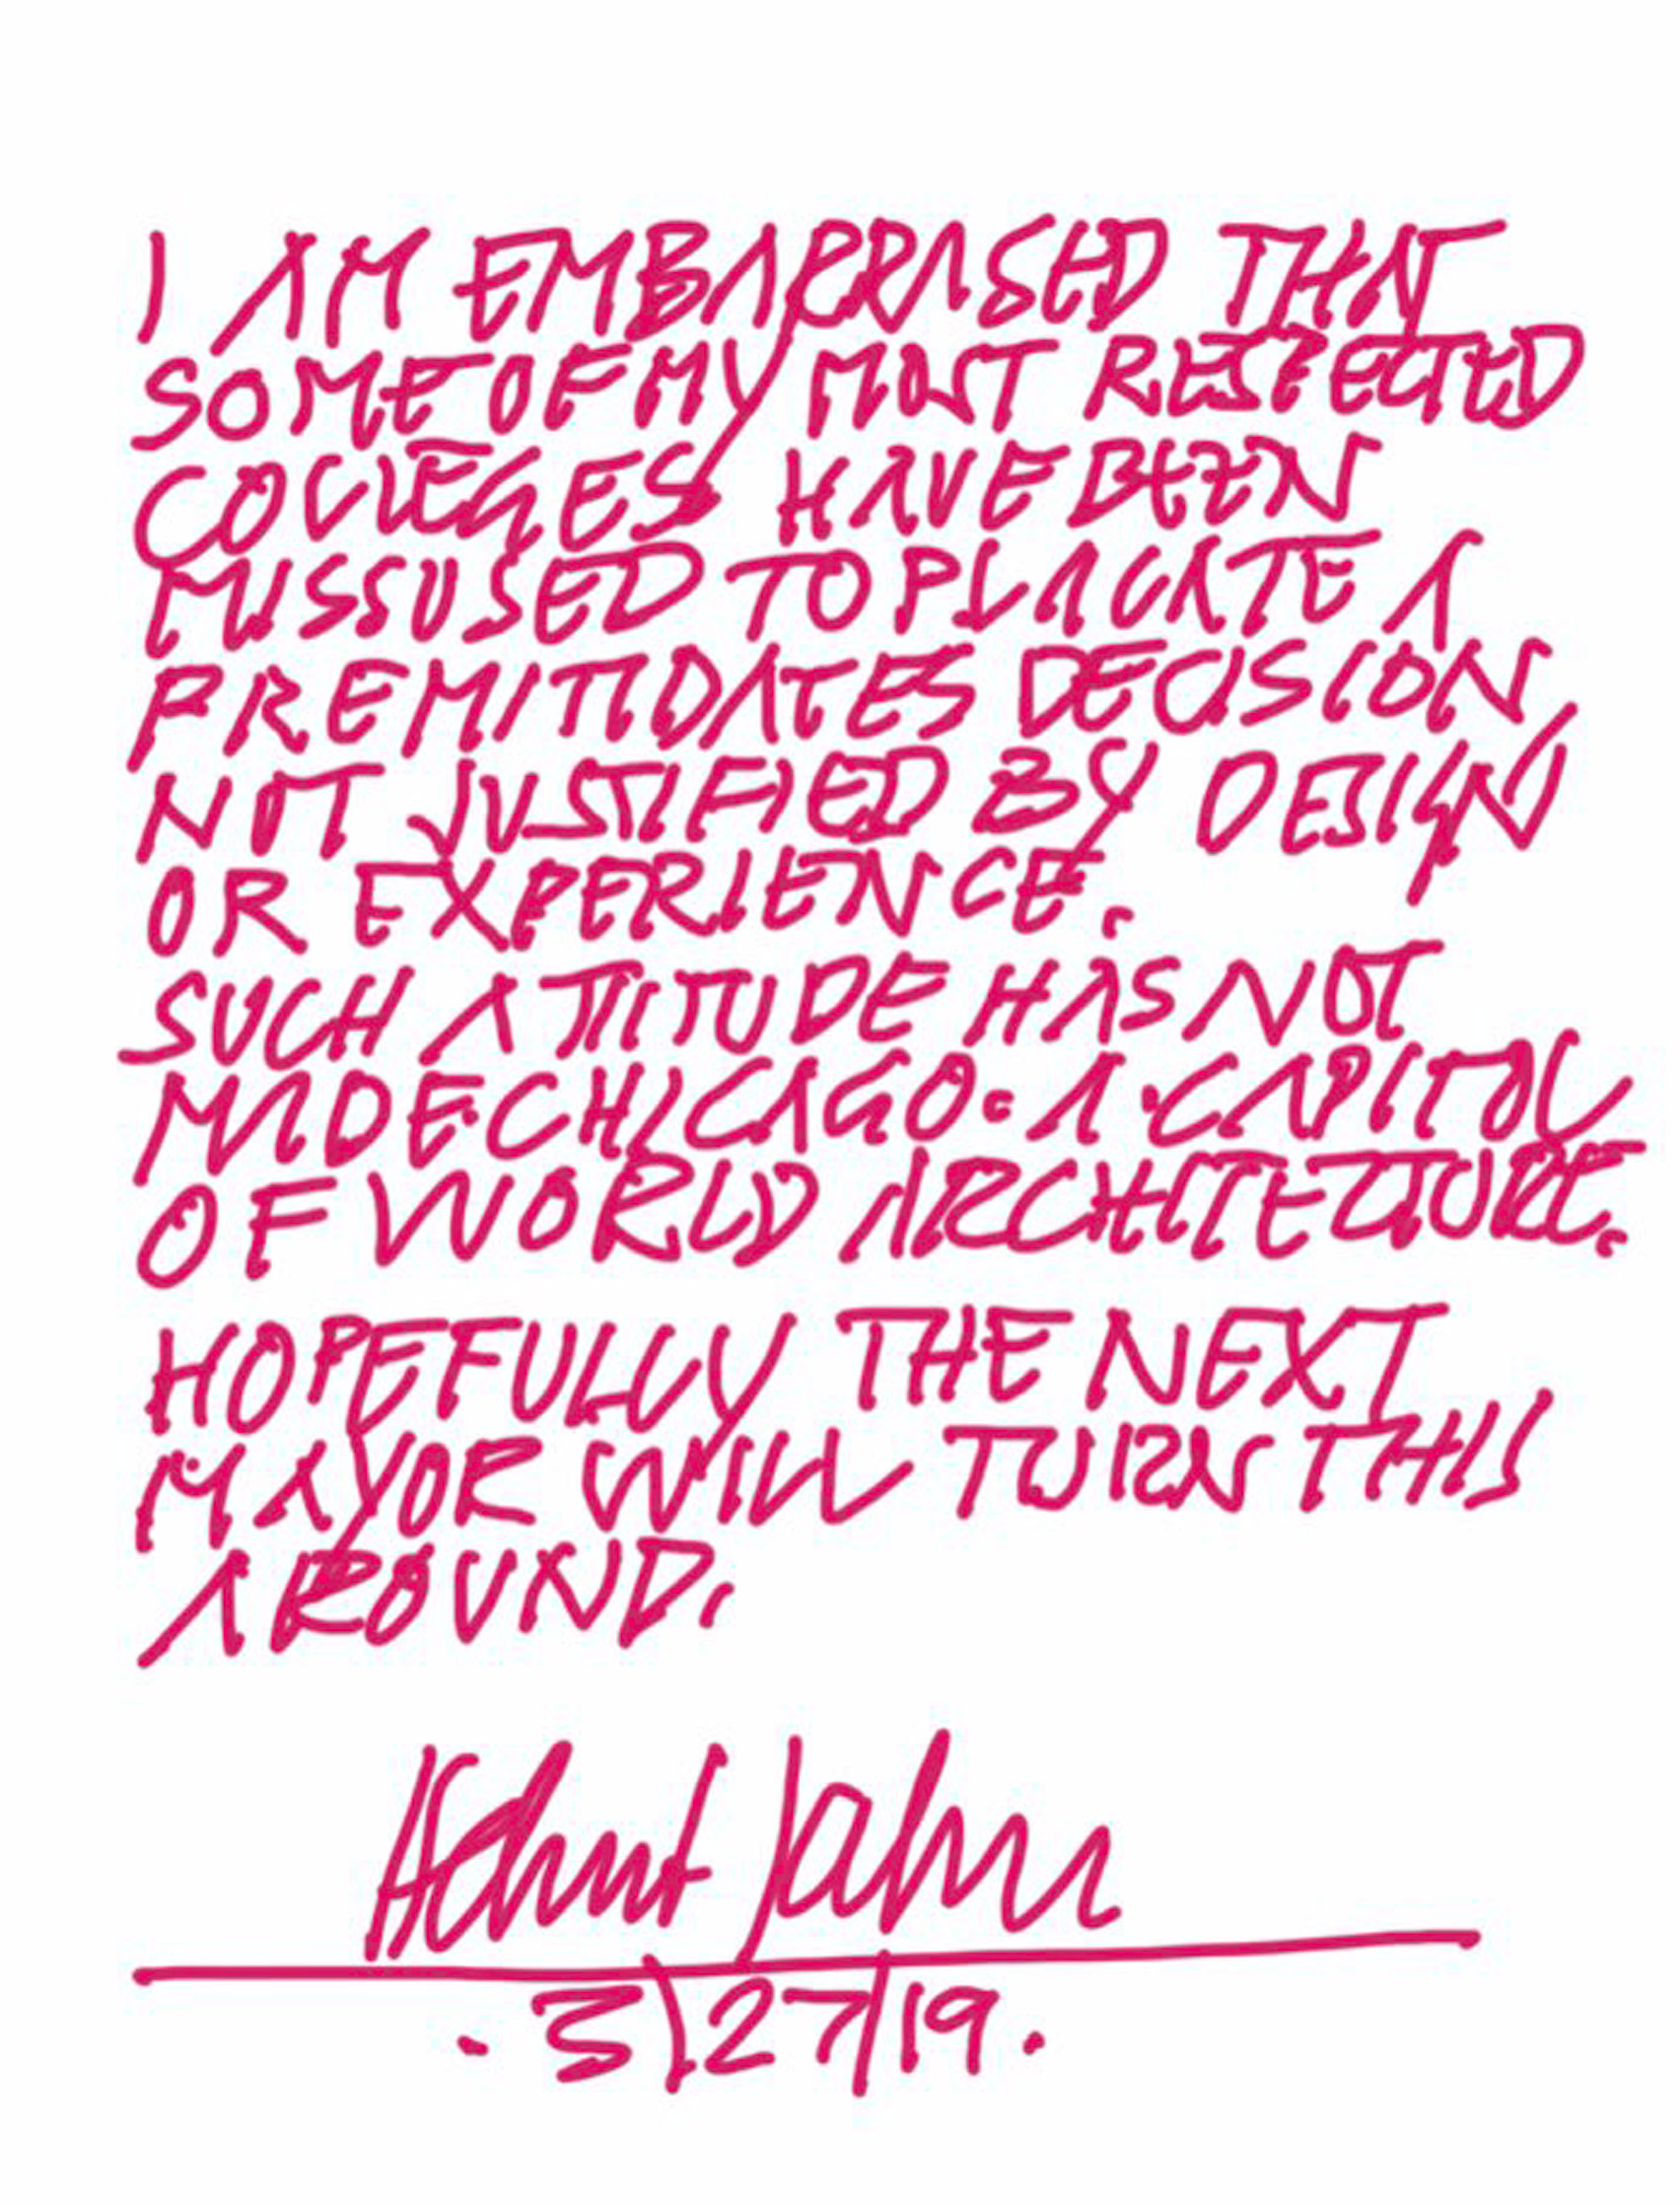 Helmut Jahn note on Chicago O'Hare airport news